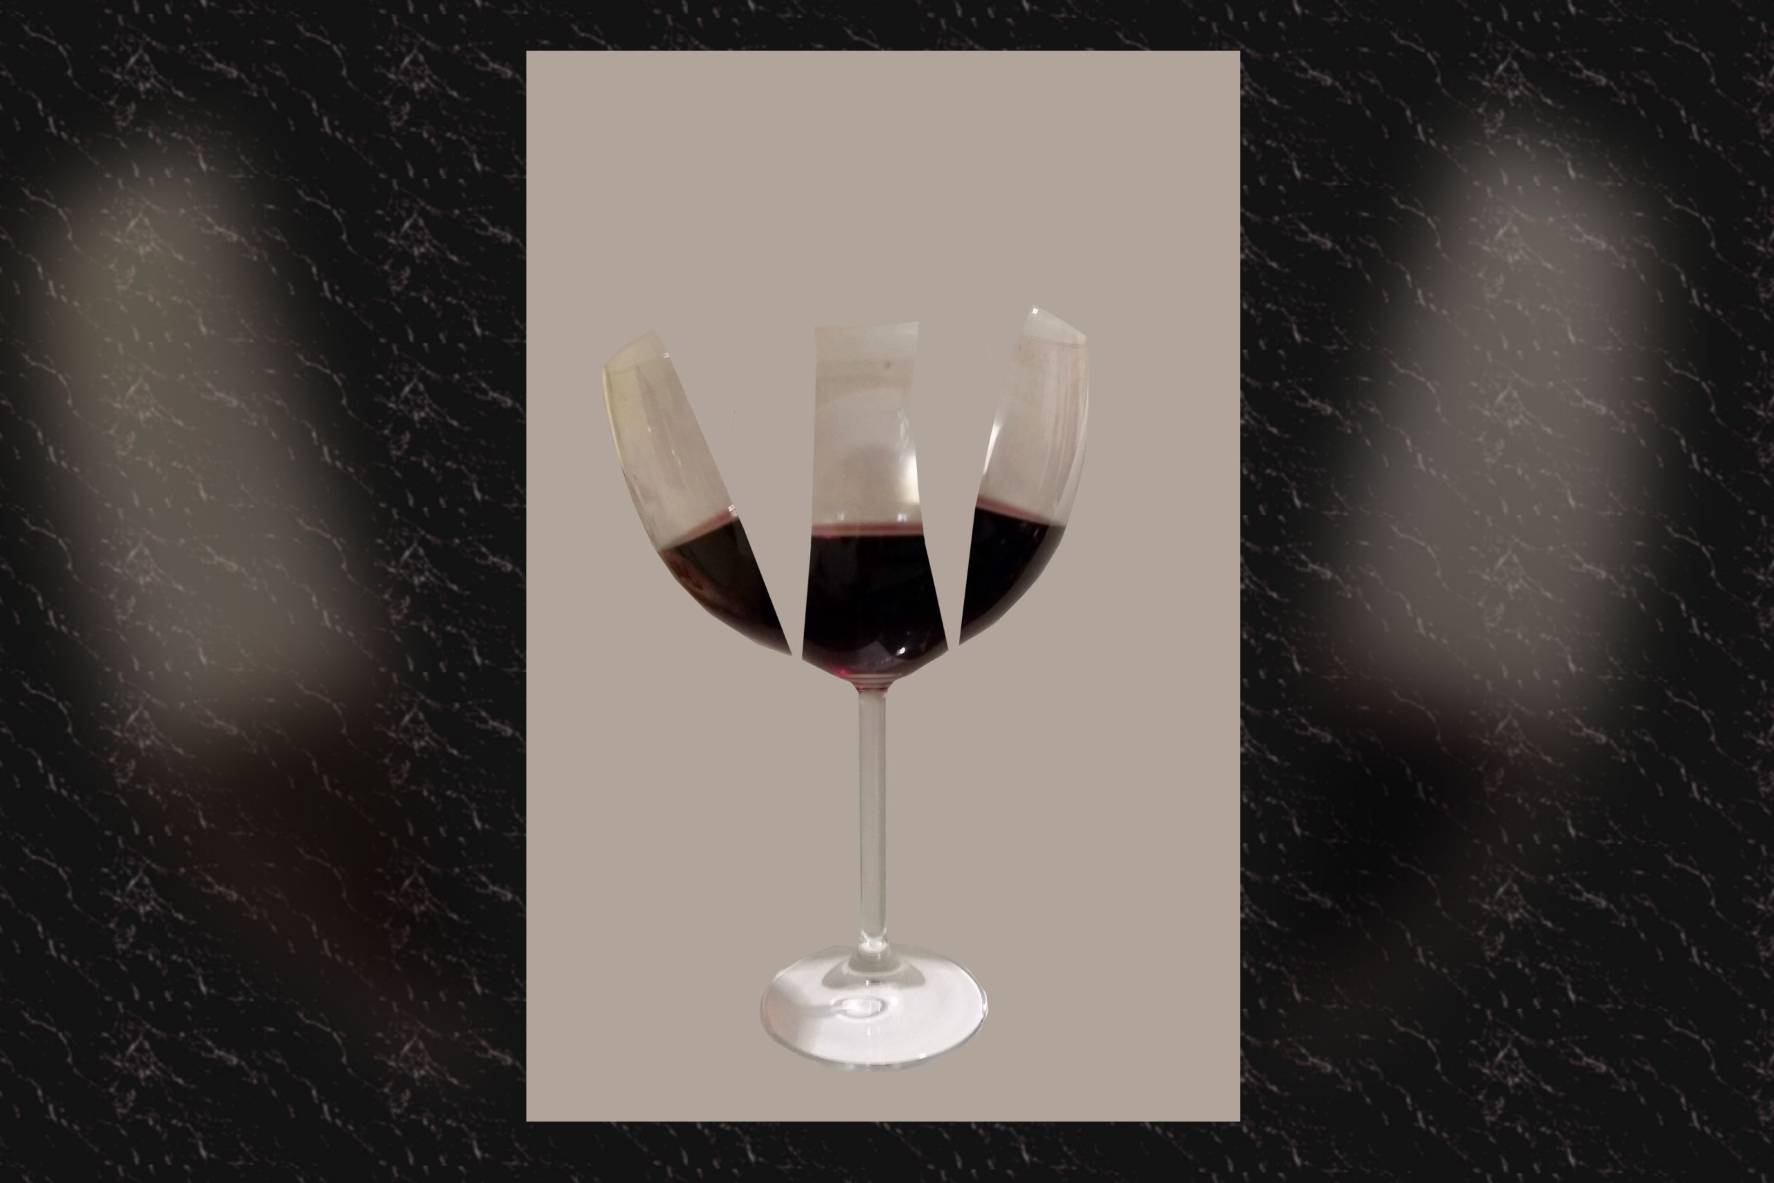 153: I. Lorenz; Triple Wine Glass; Berlin; 2015